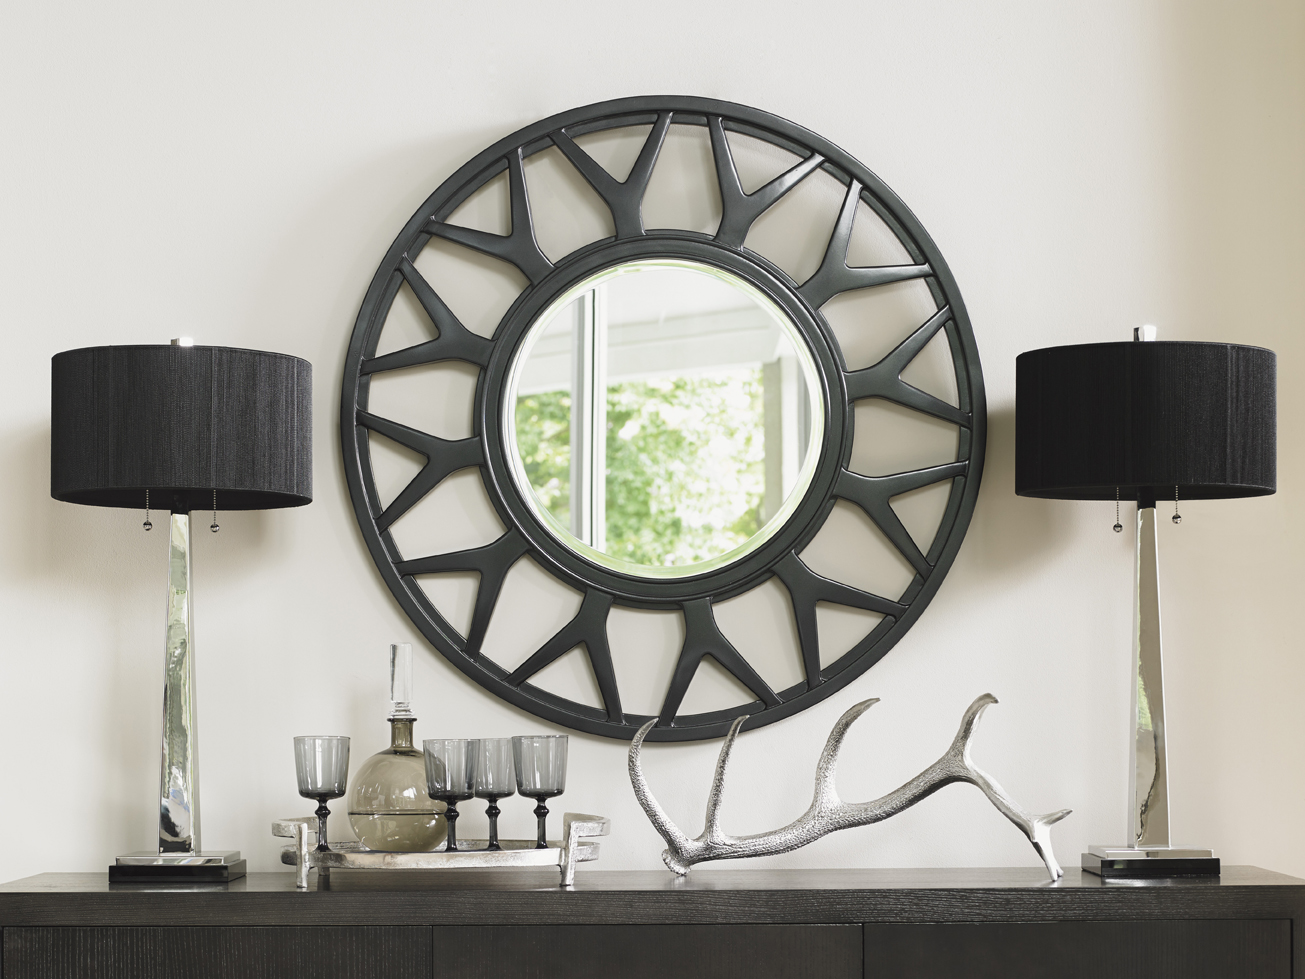 Lexington Cheap Decorative Mirrors for Living Room Brooklyn, New York